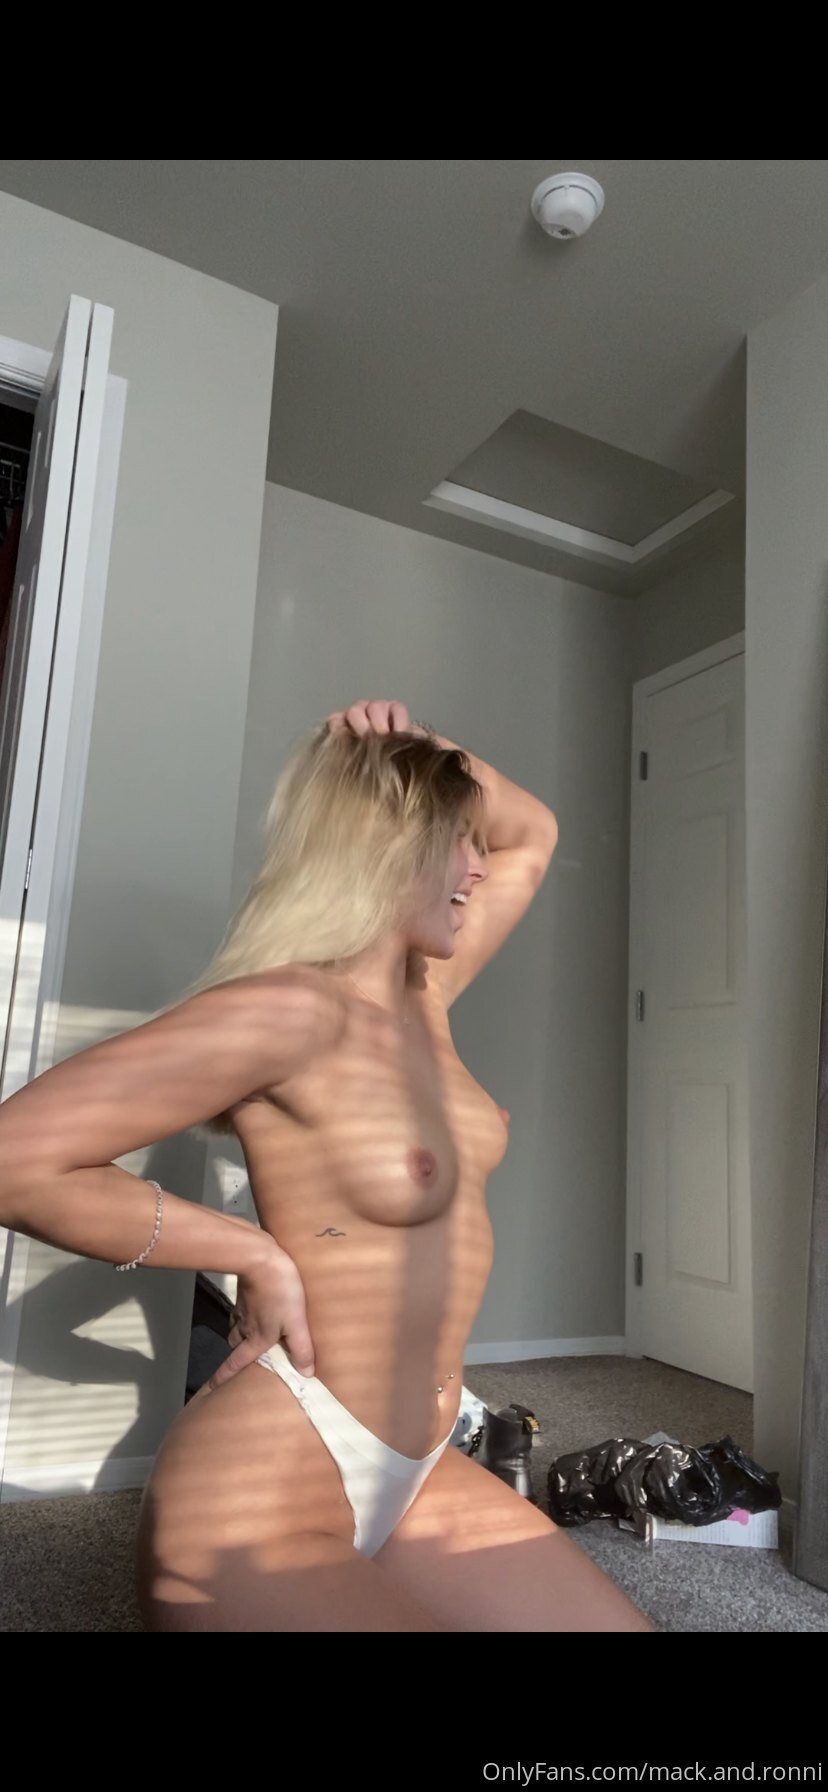 Mack.&.ronni Porn OnlyFans Leaked Nudes 55